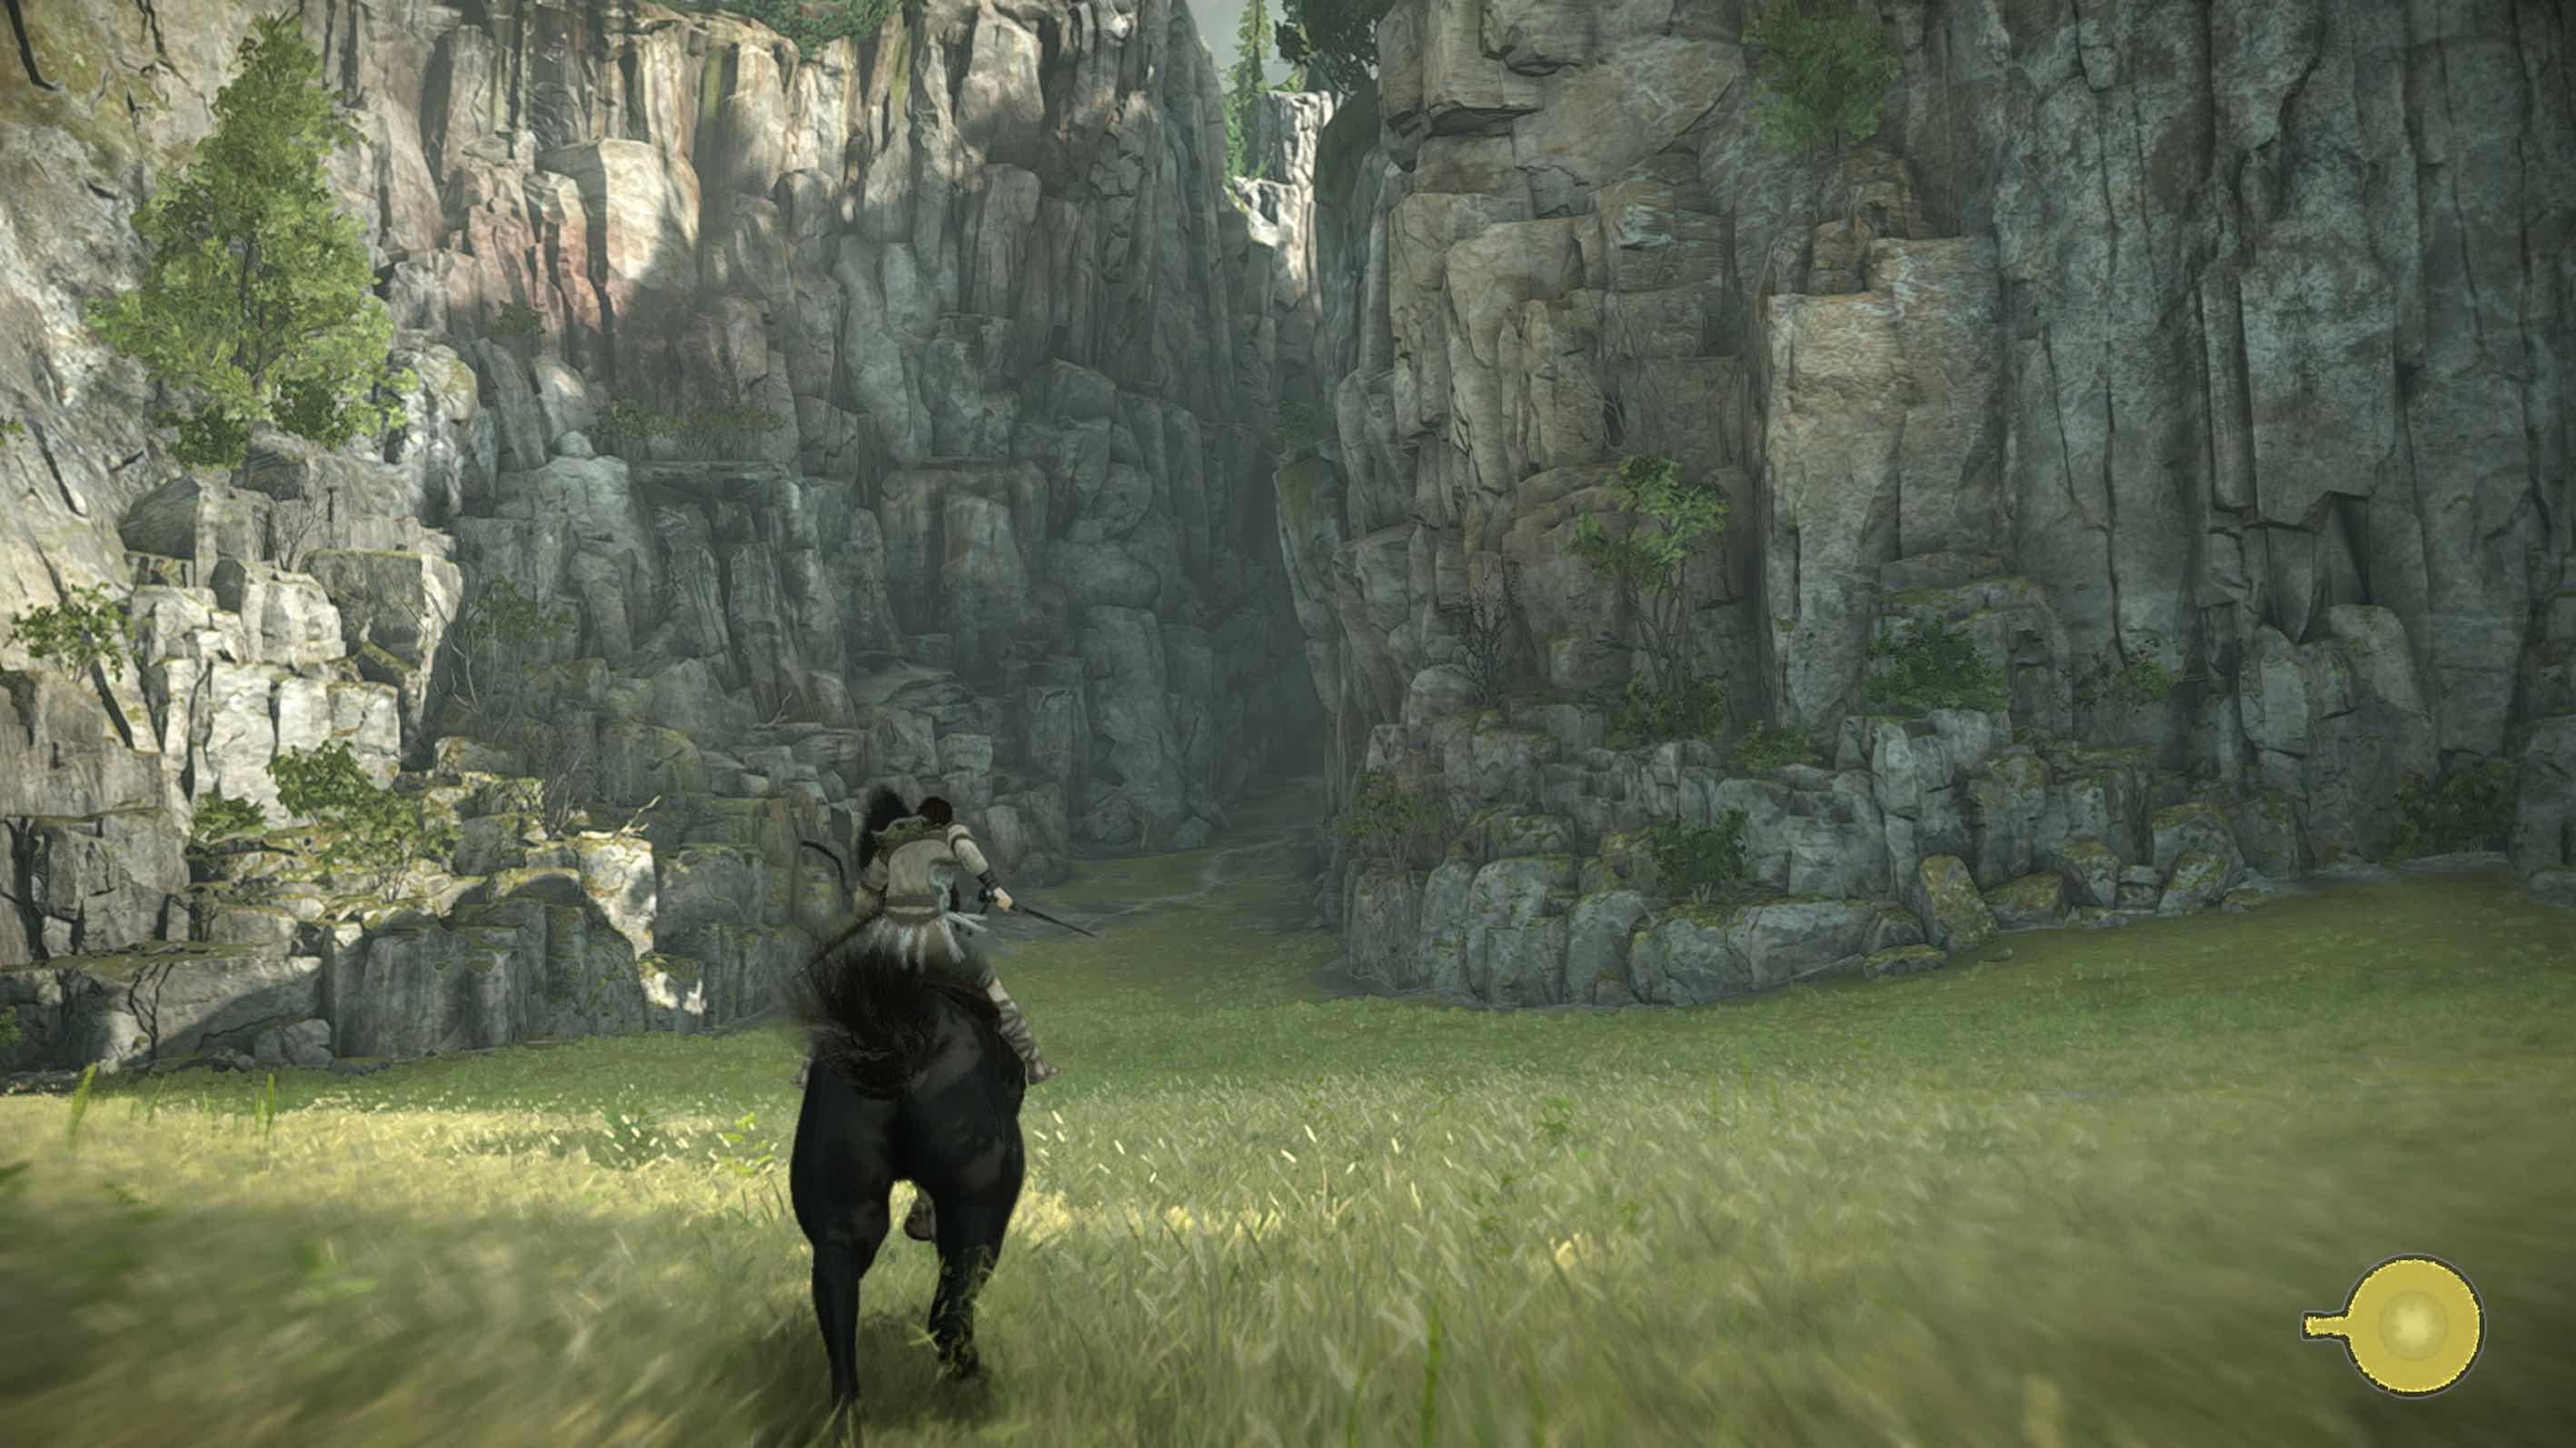 Shadow_of_the_Colossus_Coloso_4_1